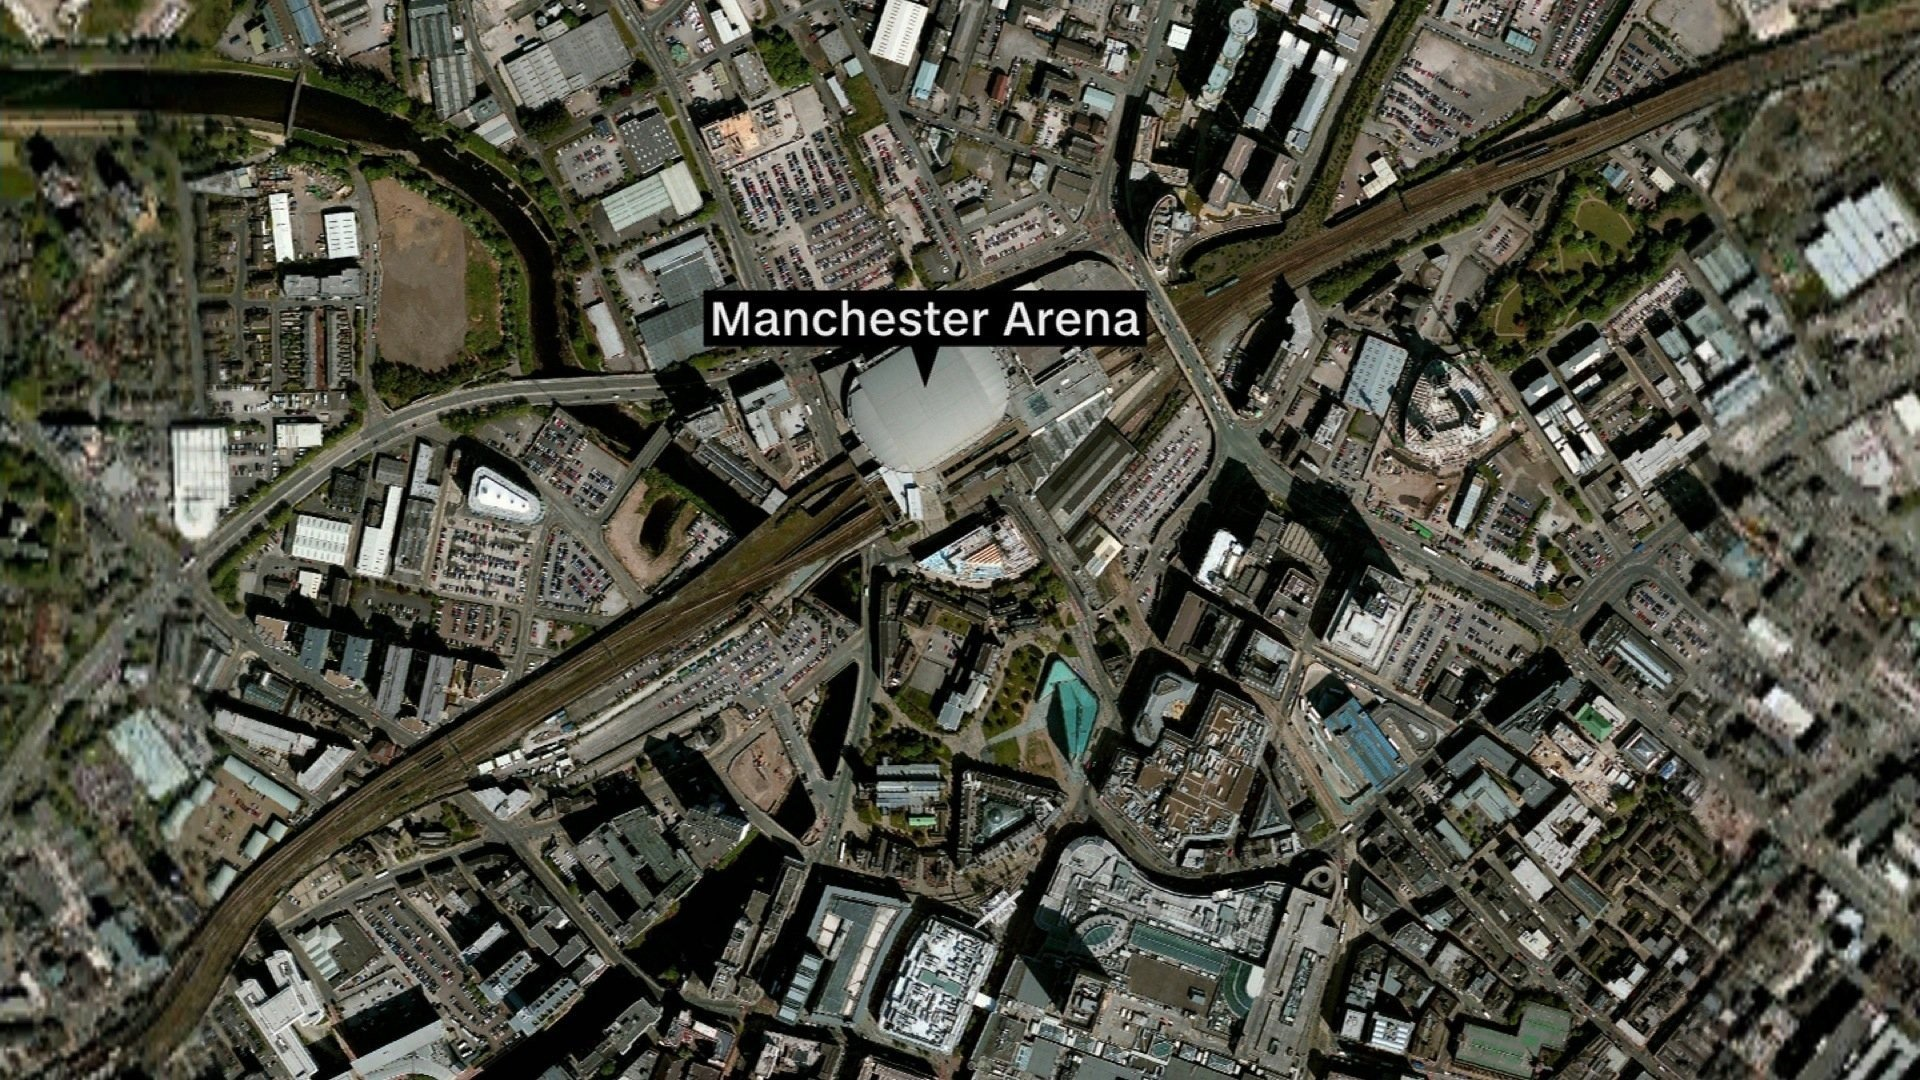 United Kingdom irritated by USA leaks in Manchester attack